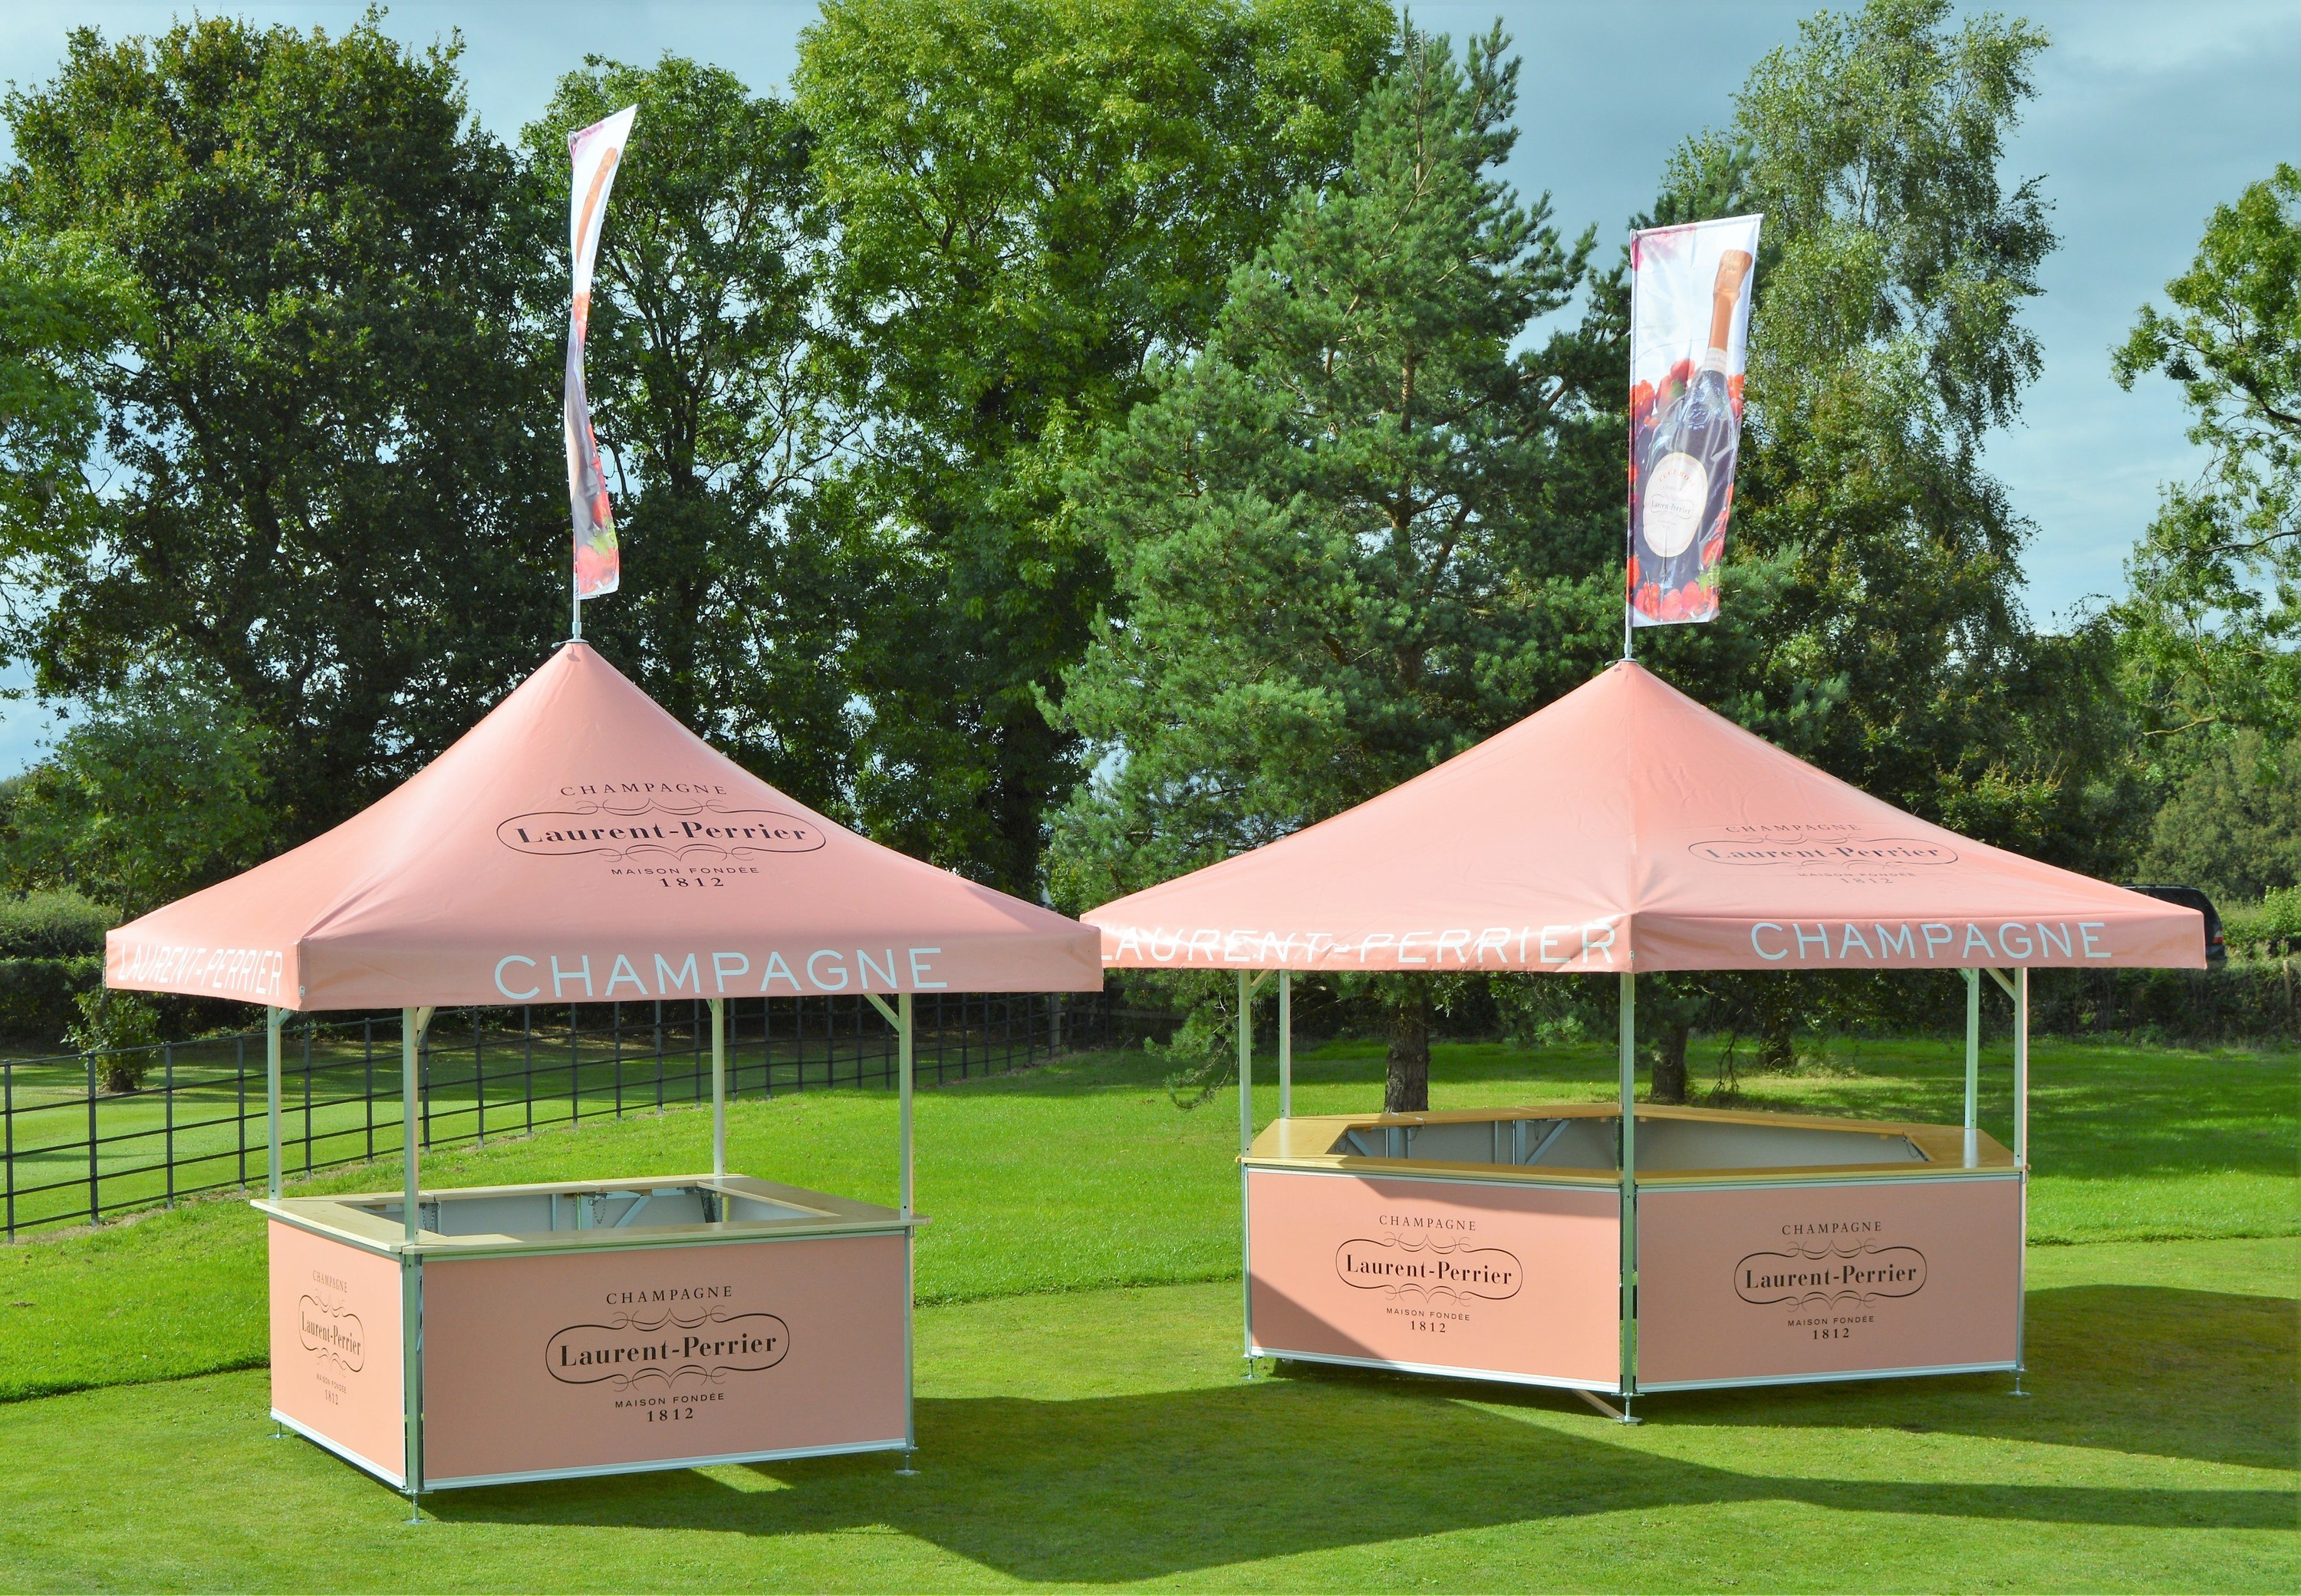 <p>Event, Mobile &amp; Stadia Bars &#8211; Tents &amp; Marquees &#8211; Hexagonl &amp; Sqaure Pavilions.</p> <p>&nbsp;</p> <p>Laurent Perrier Outdoor Promotional Stand Premium Champagne Event Bar ideally suited for Racecourse or other high-profile sporting events and venues eg cricket ground.</p> <p>&nbsp;</p> <p>Branding opportunities of the roof and base panels are available.  Both include Roof Flags</p>